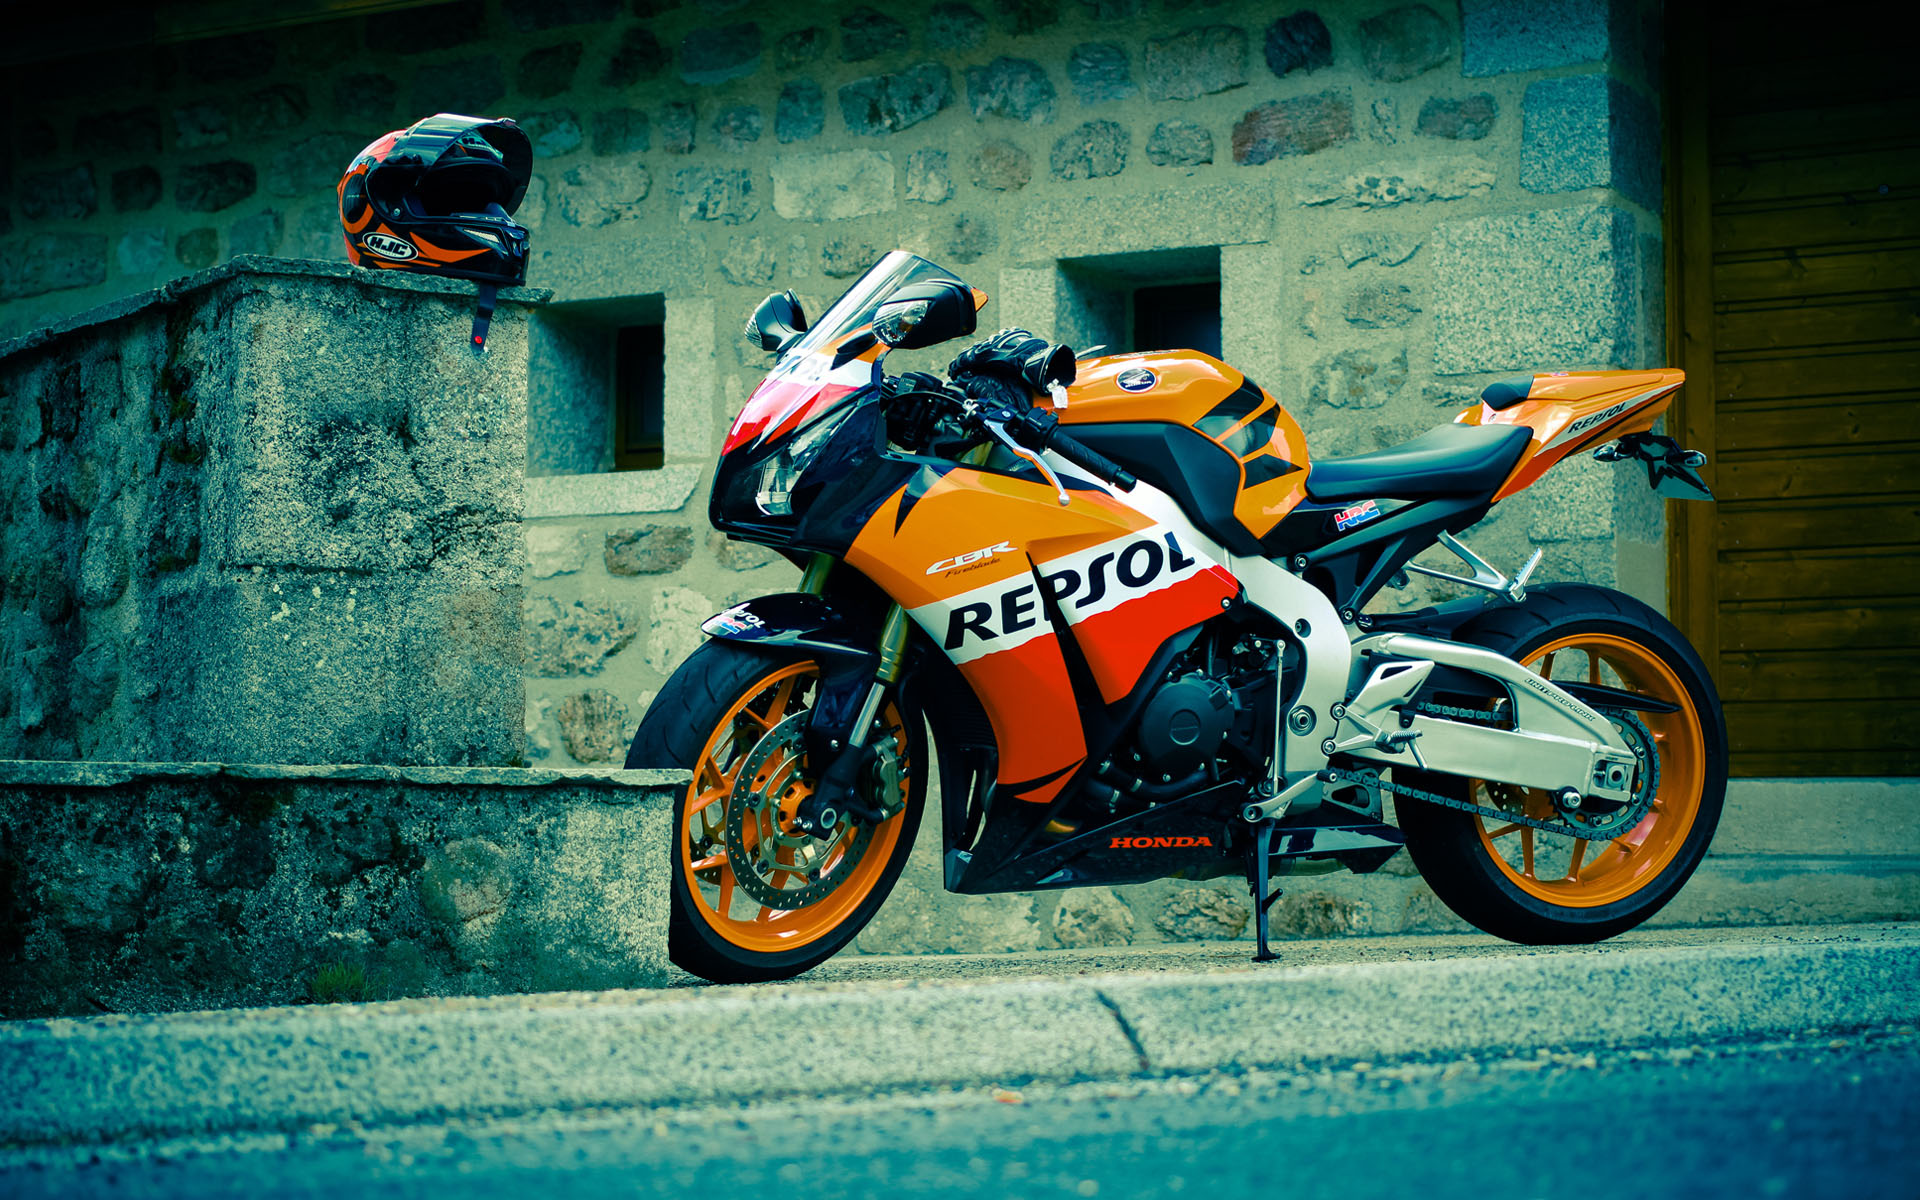 Honda Repsol Wallpaper Motorcycle: Honda CBR Repsol HD Wallpaper